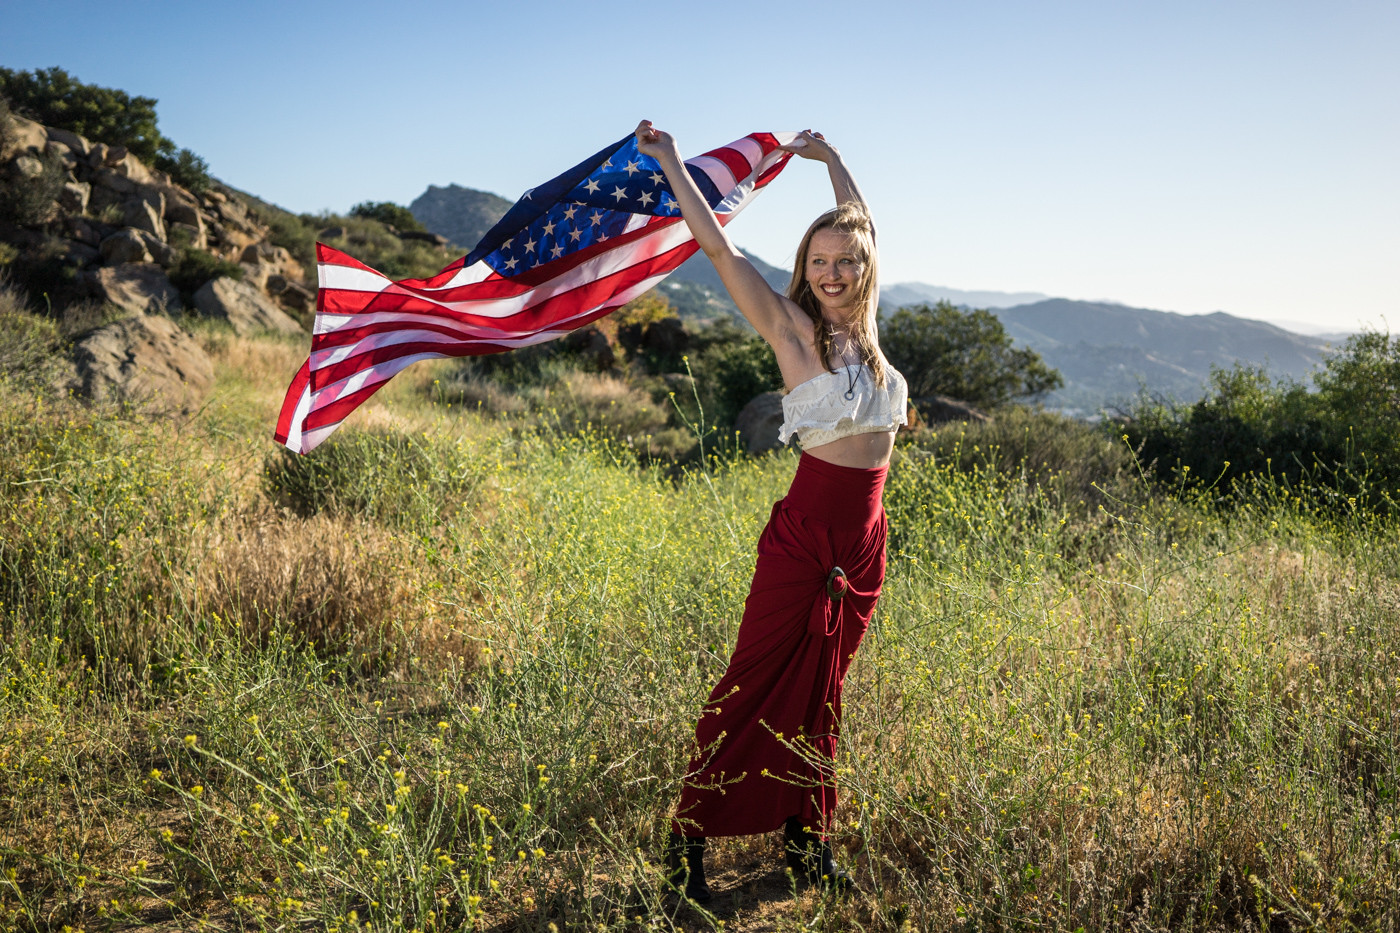 diana-patriotic-american-flag-red-skirt-simi-valley-california